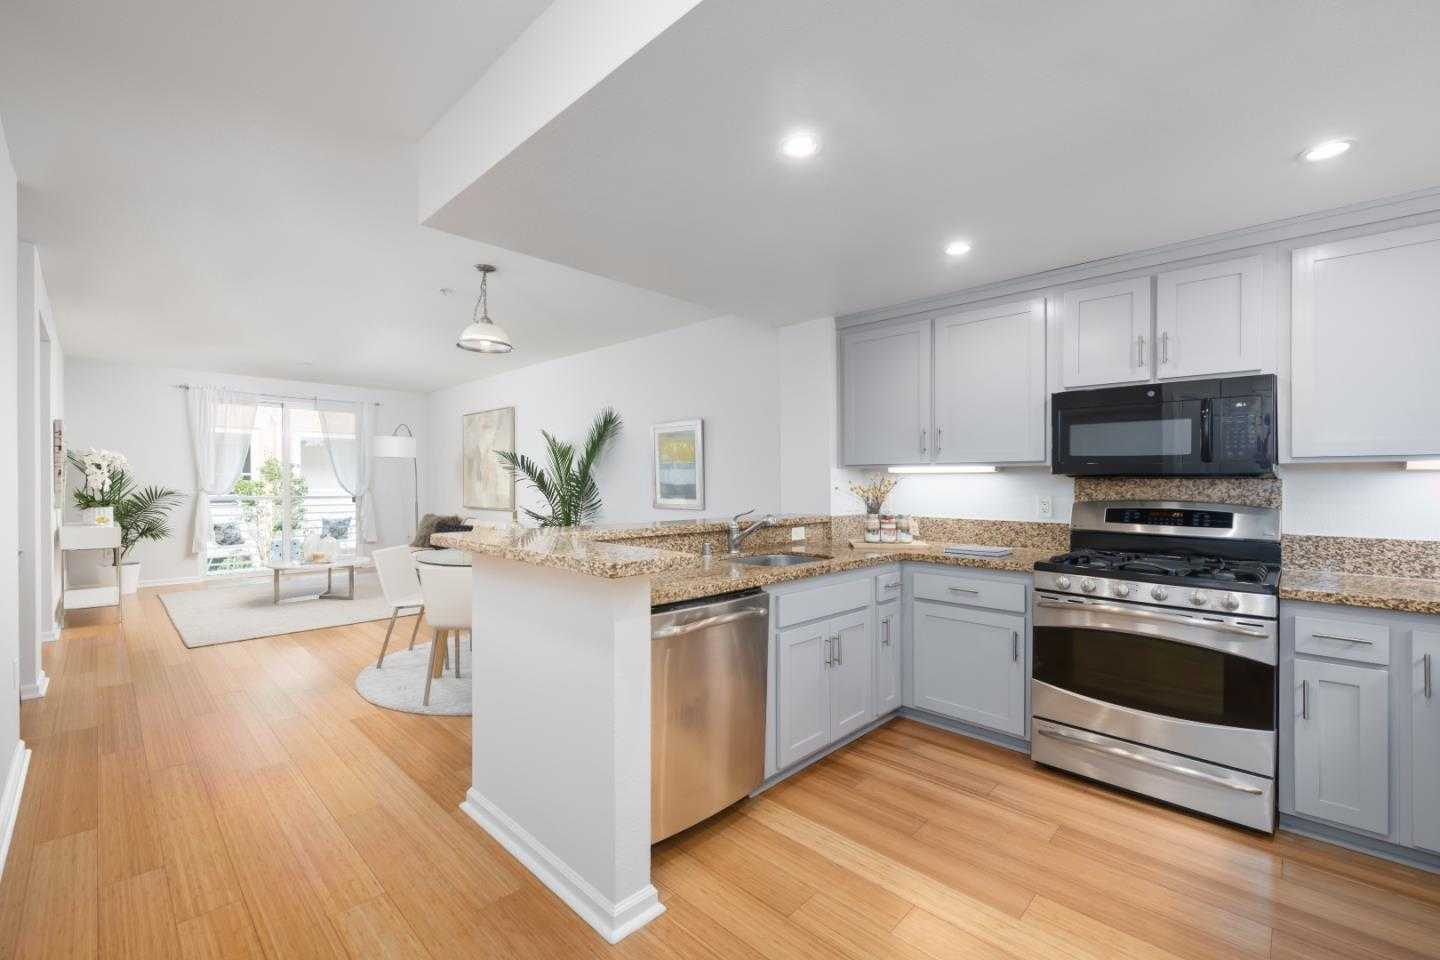 $579,000 - 1Br/1Ba -  for Sale in San Francisco